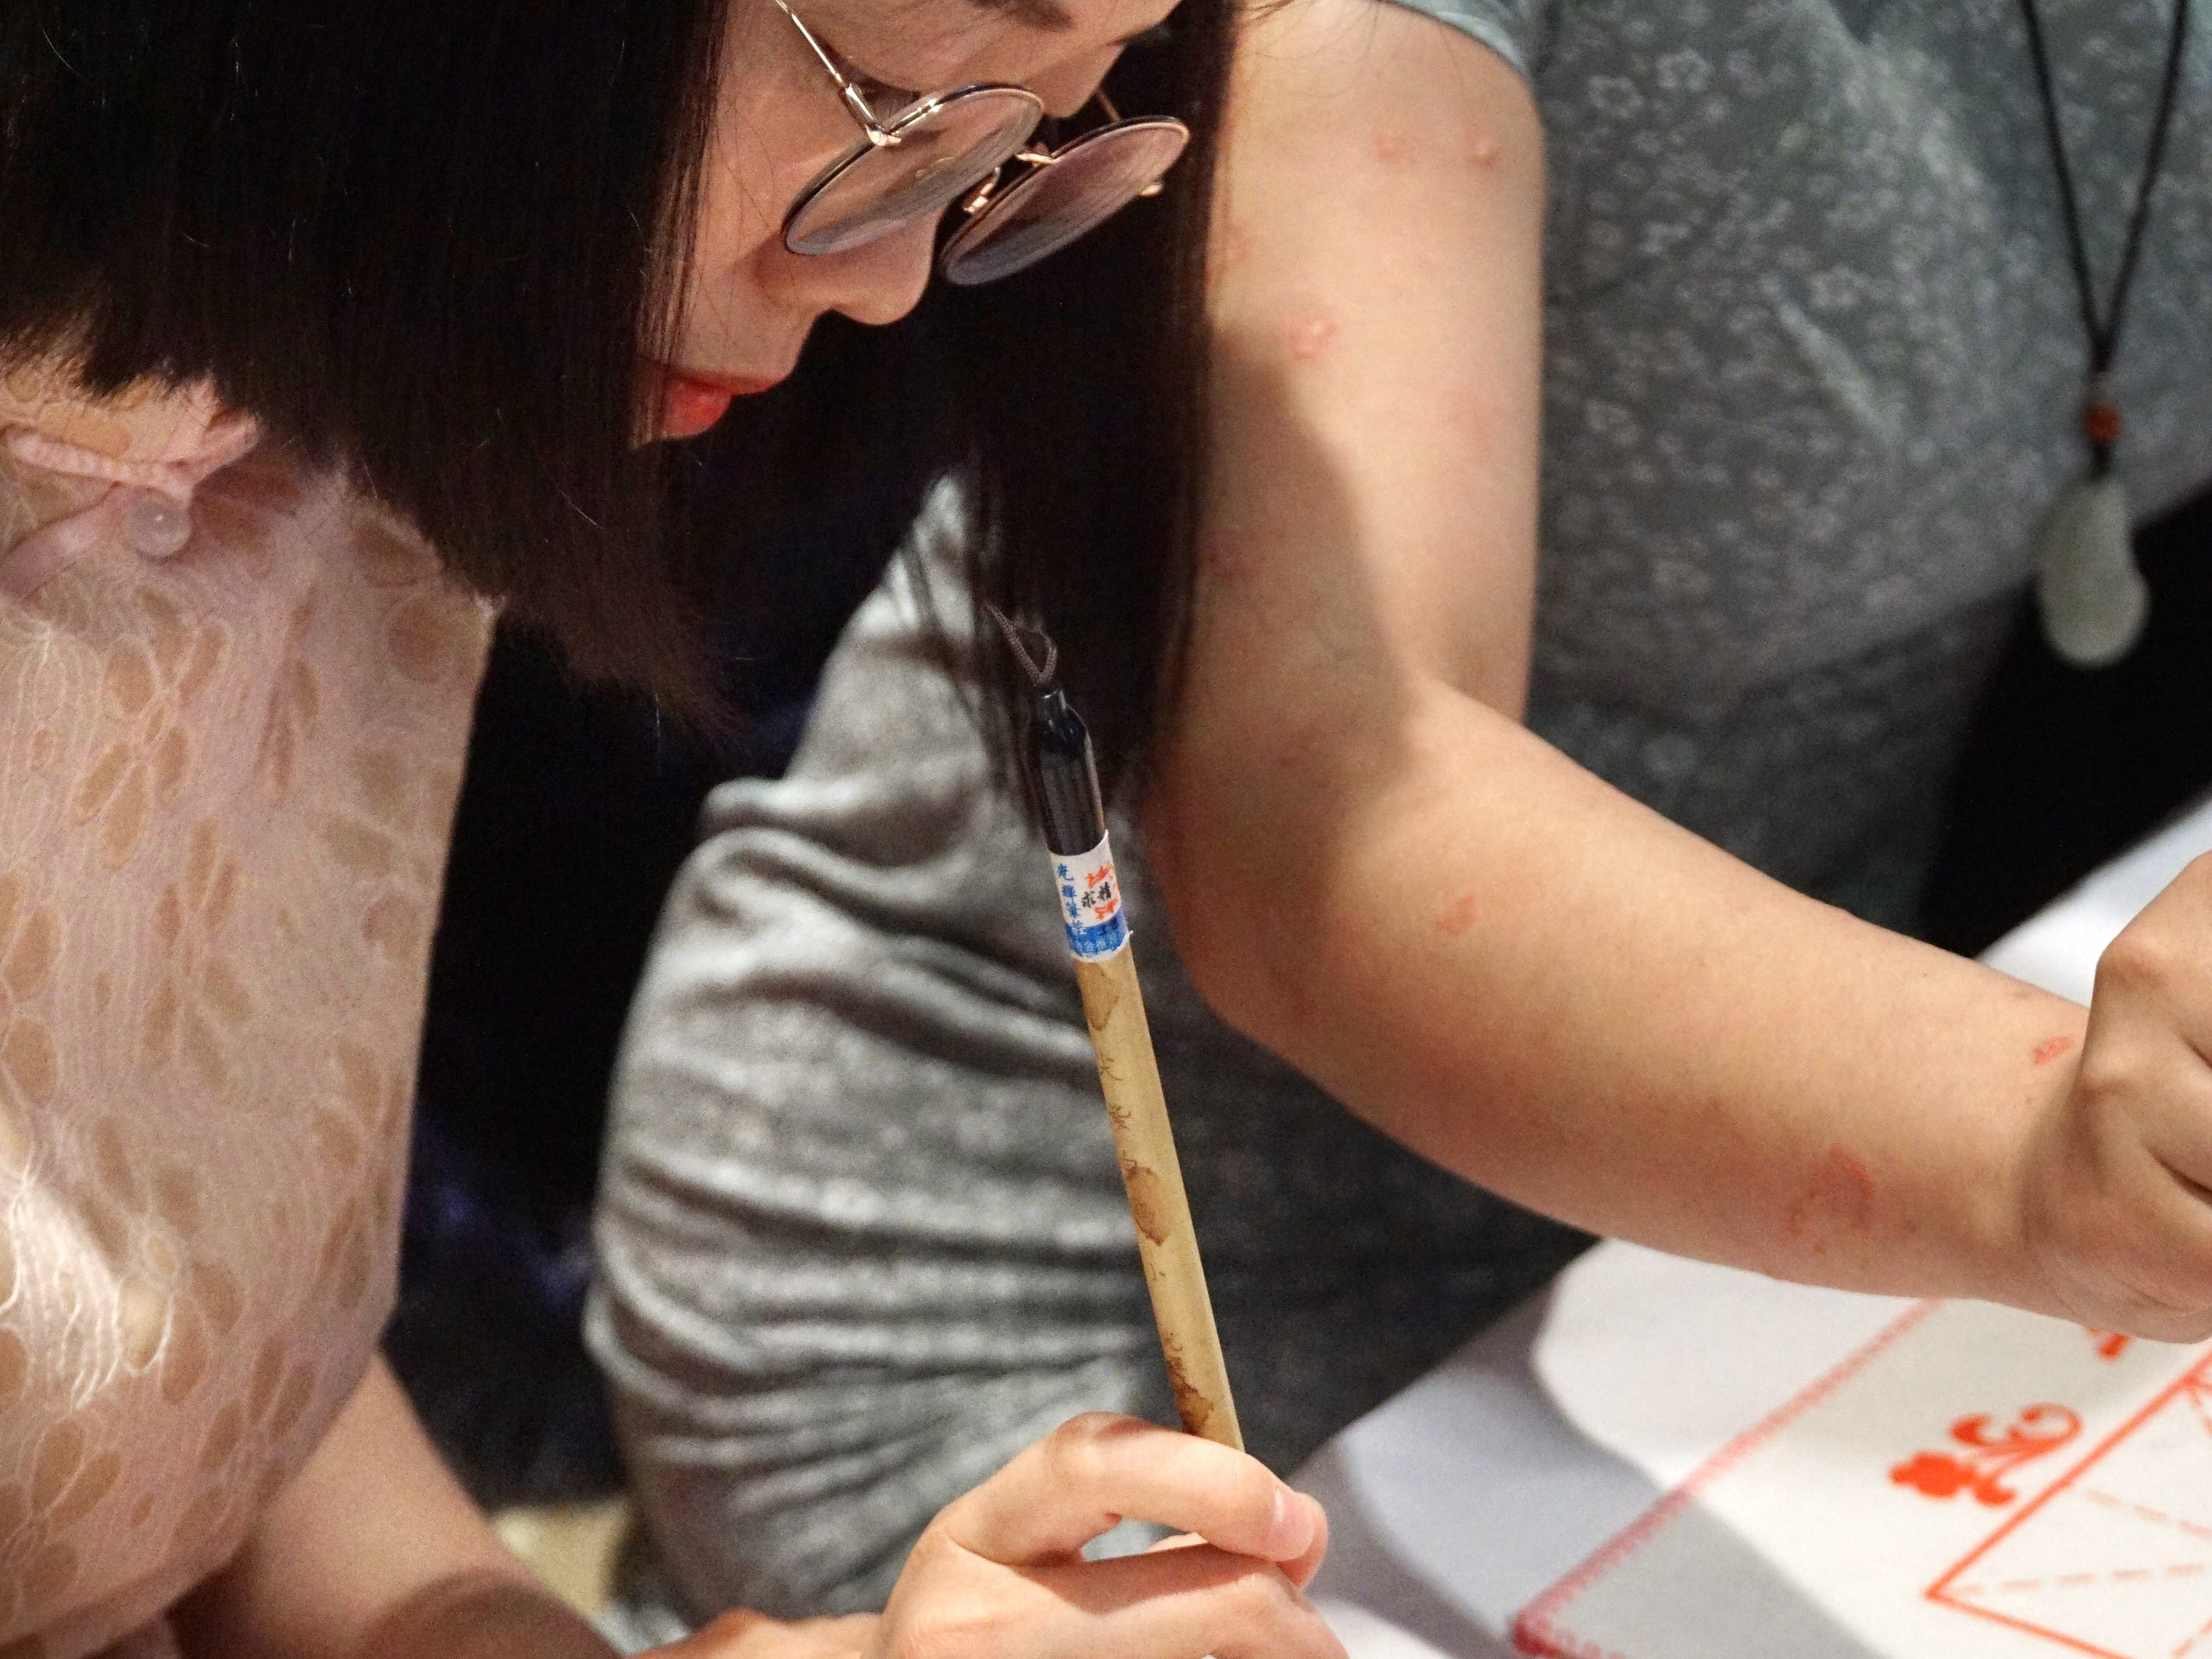 Danhua Ren writes an English name in Chinese characters during the fair.